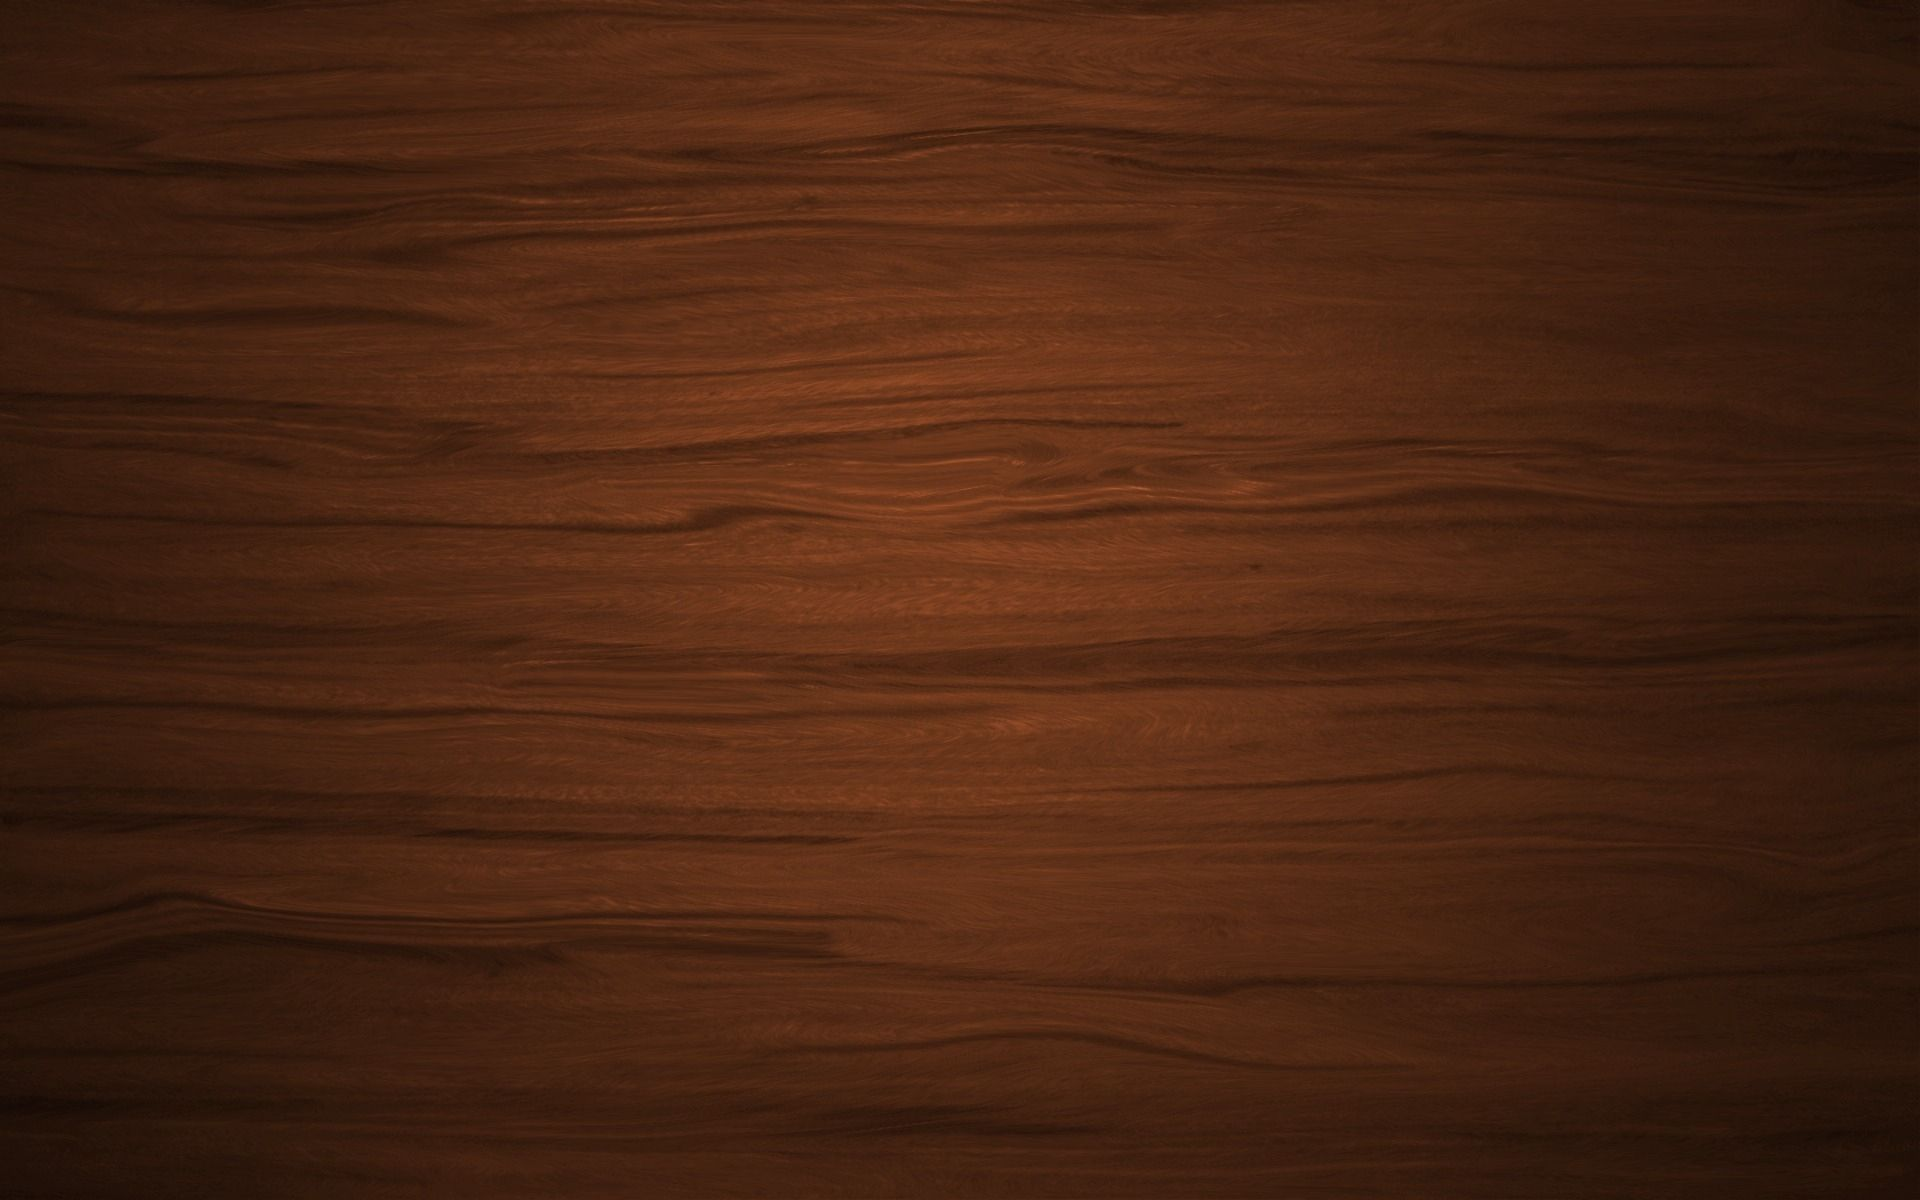 Wood textures texture wallpaper texturas